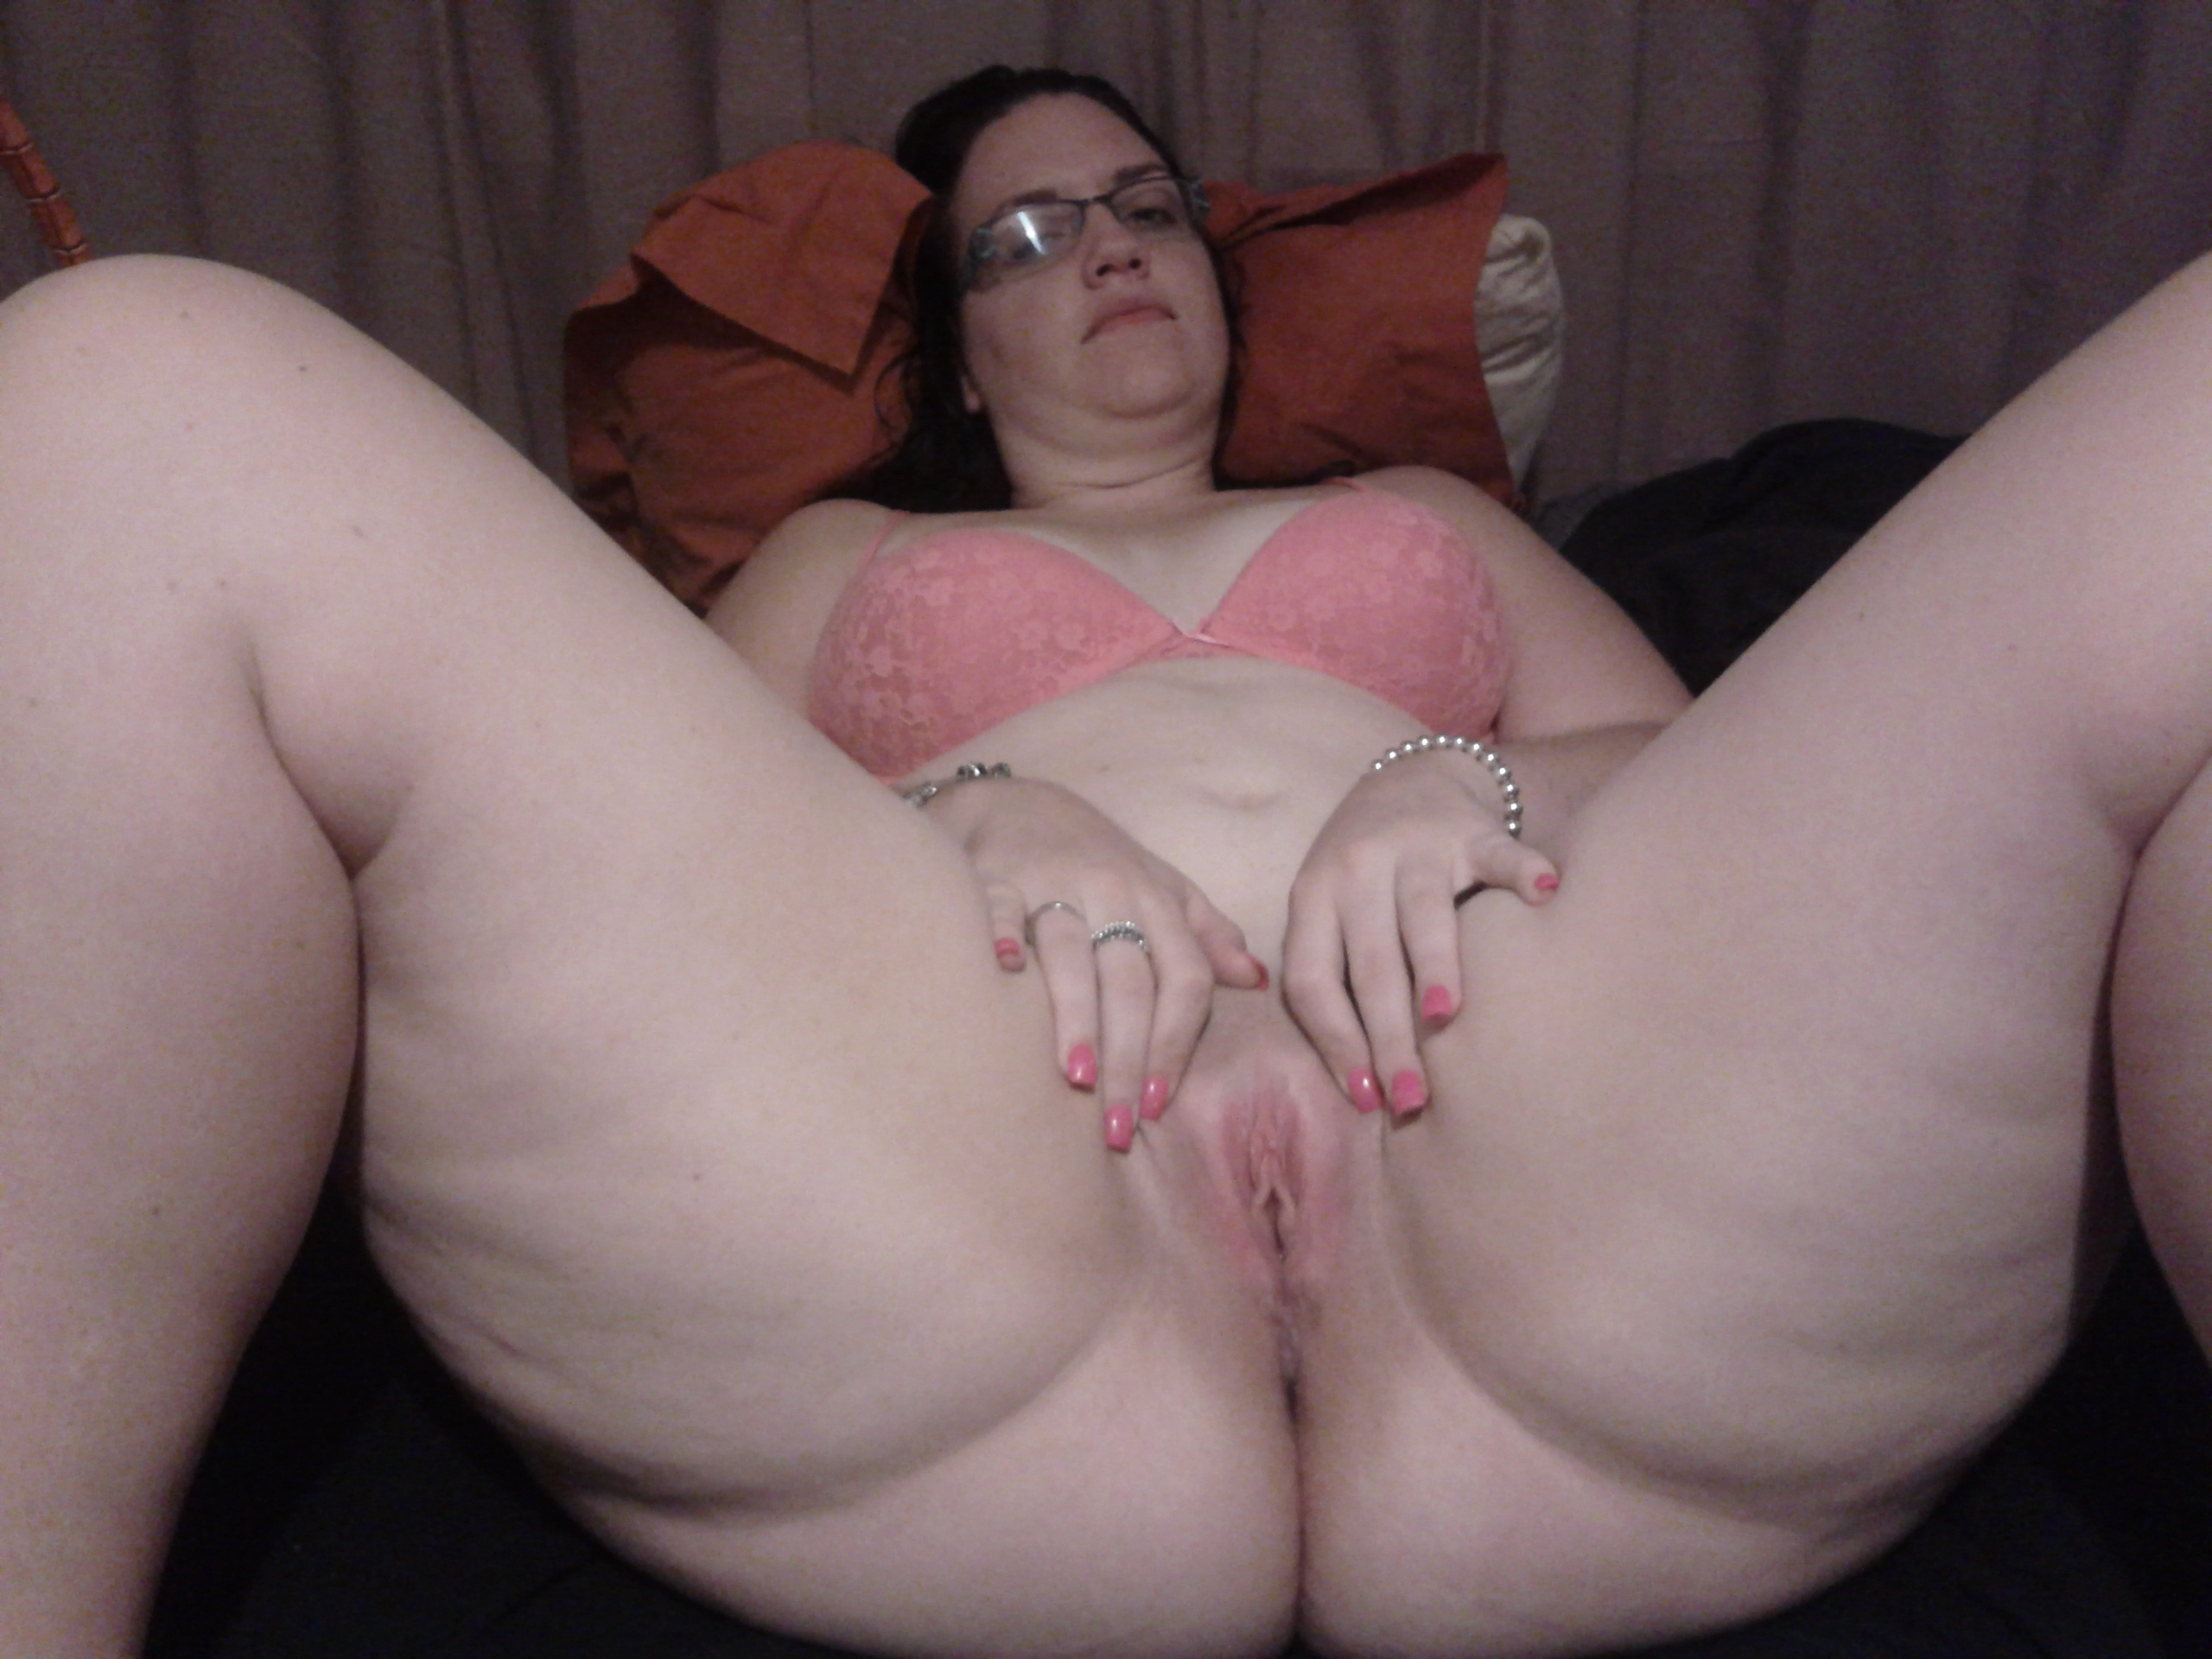 Idea sorry, Bbw milf pussy theme, will